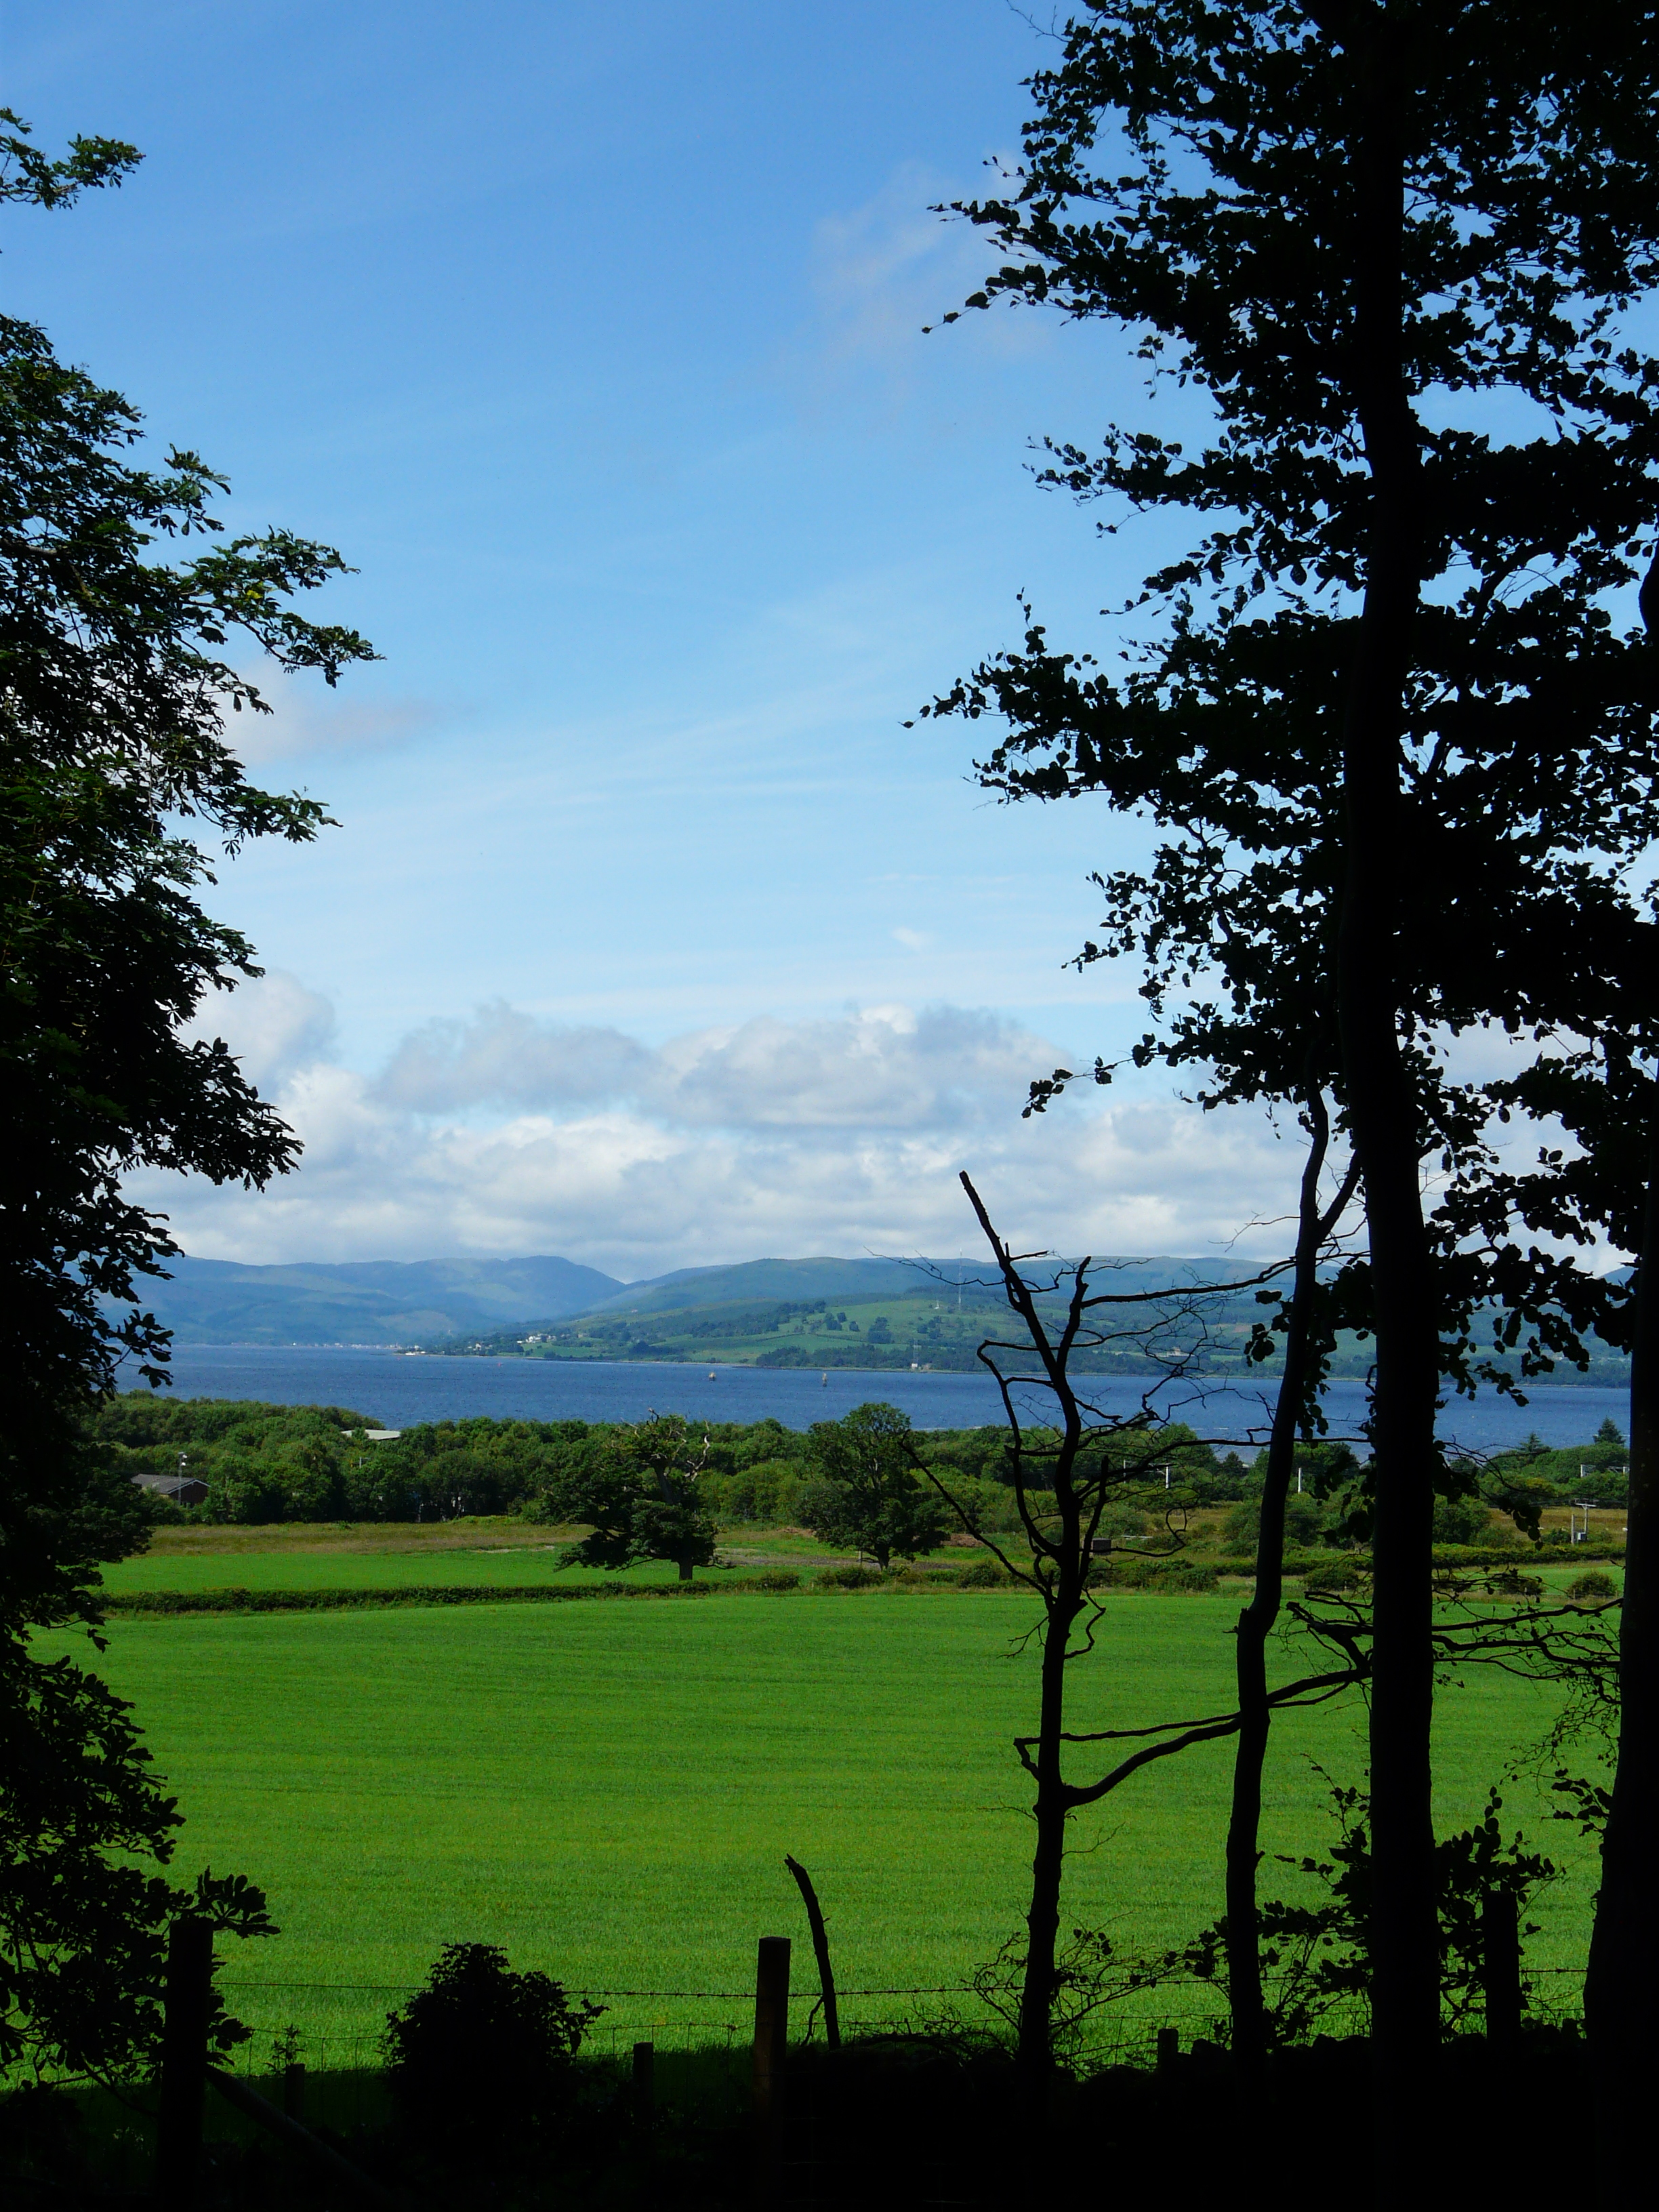 View from the trees at Keppoch House.